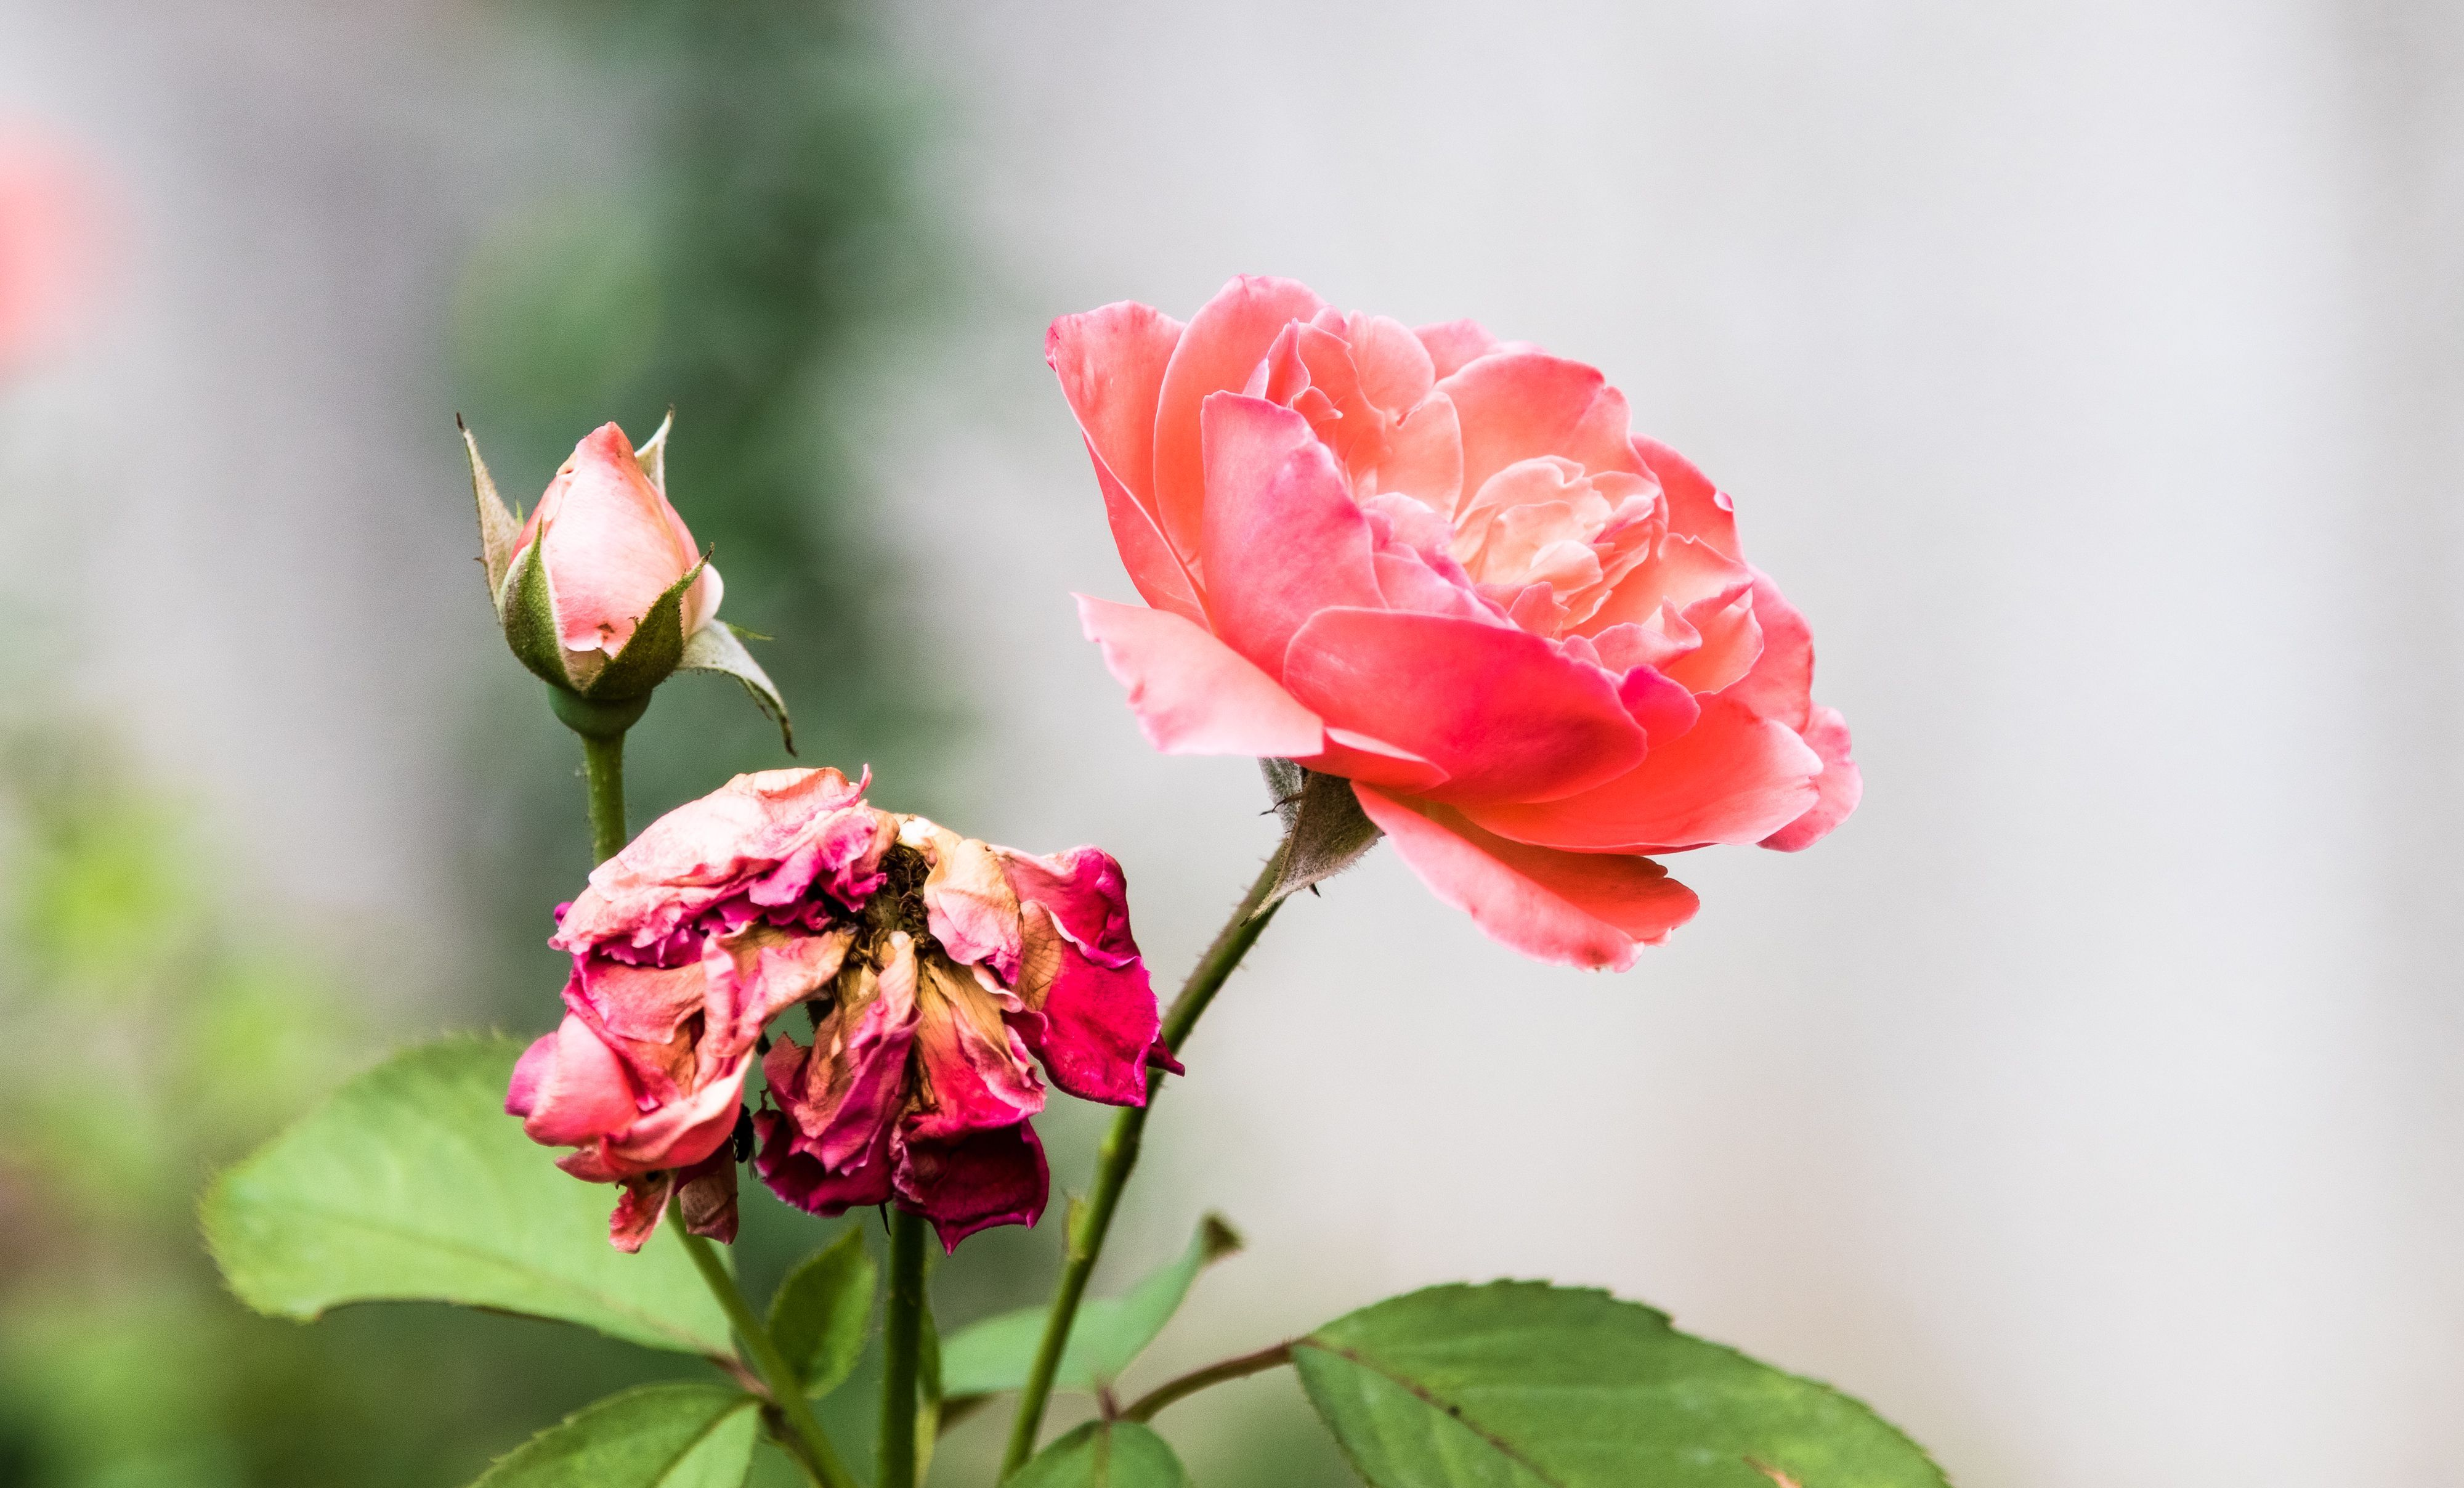 7 Types Of Roses That Are Easy To Grow Types Of Roses Rose Bush When To Prune Roses